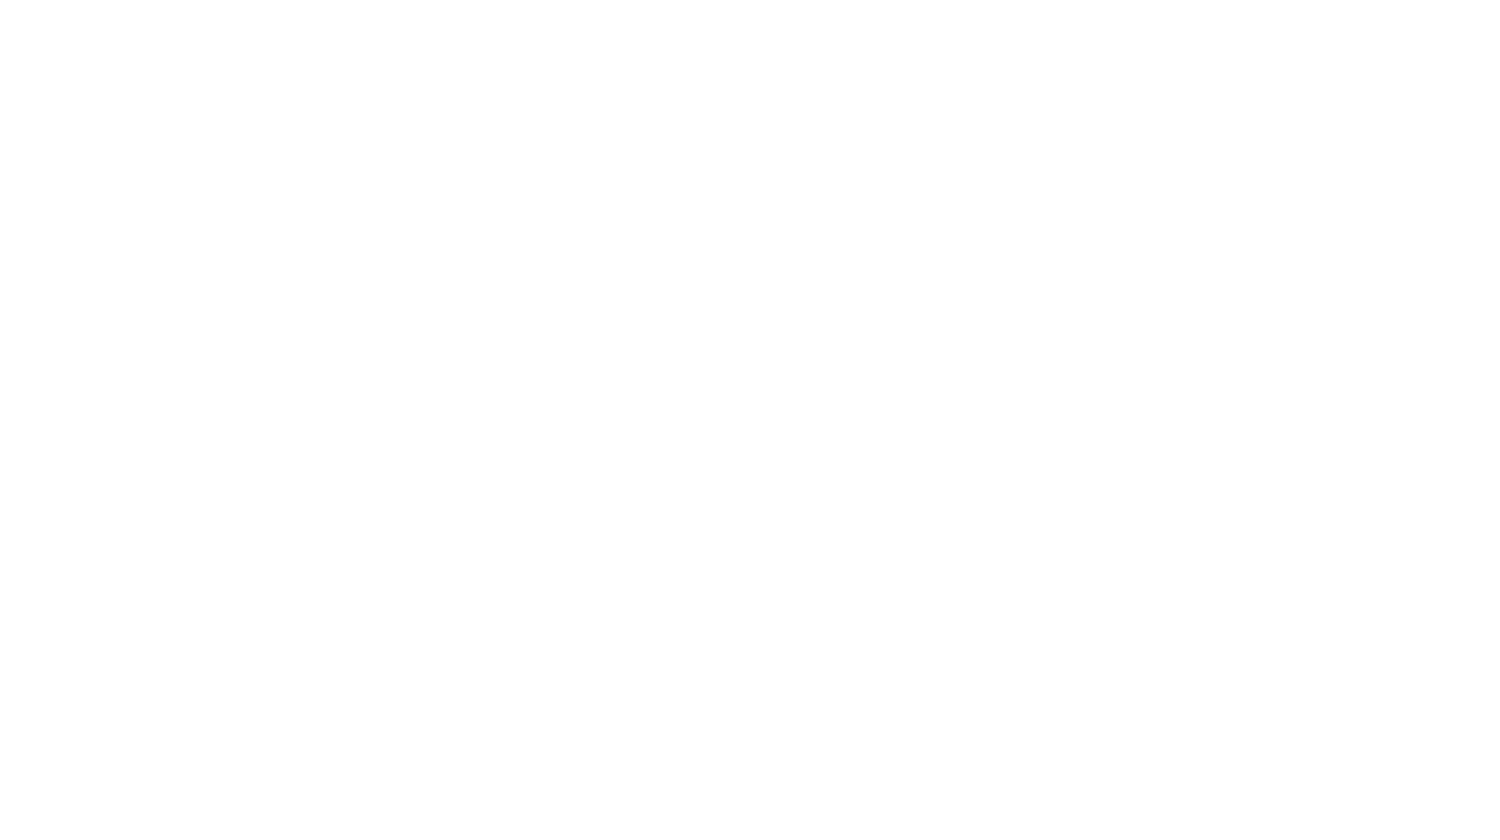 Clear Future Consulting